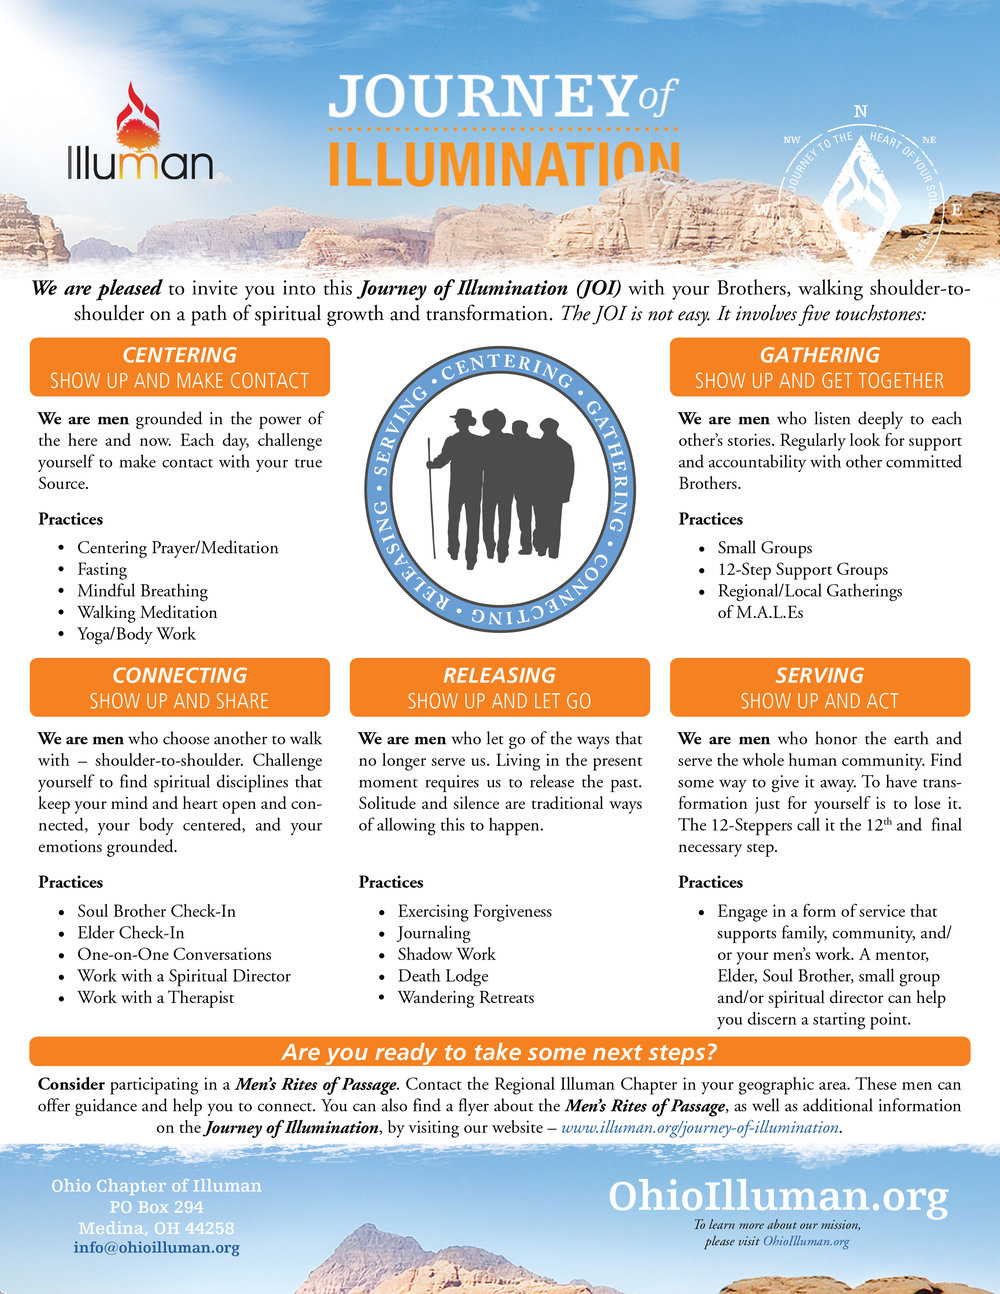 Journey of Illumination Flyer